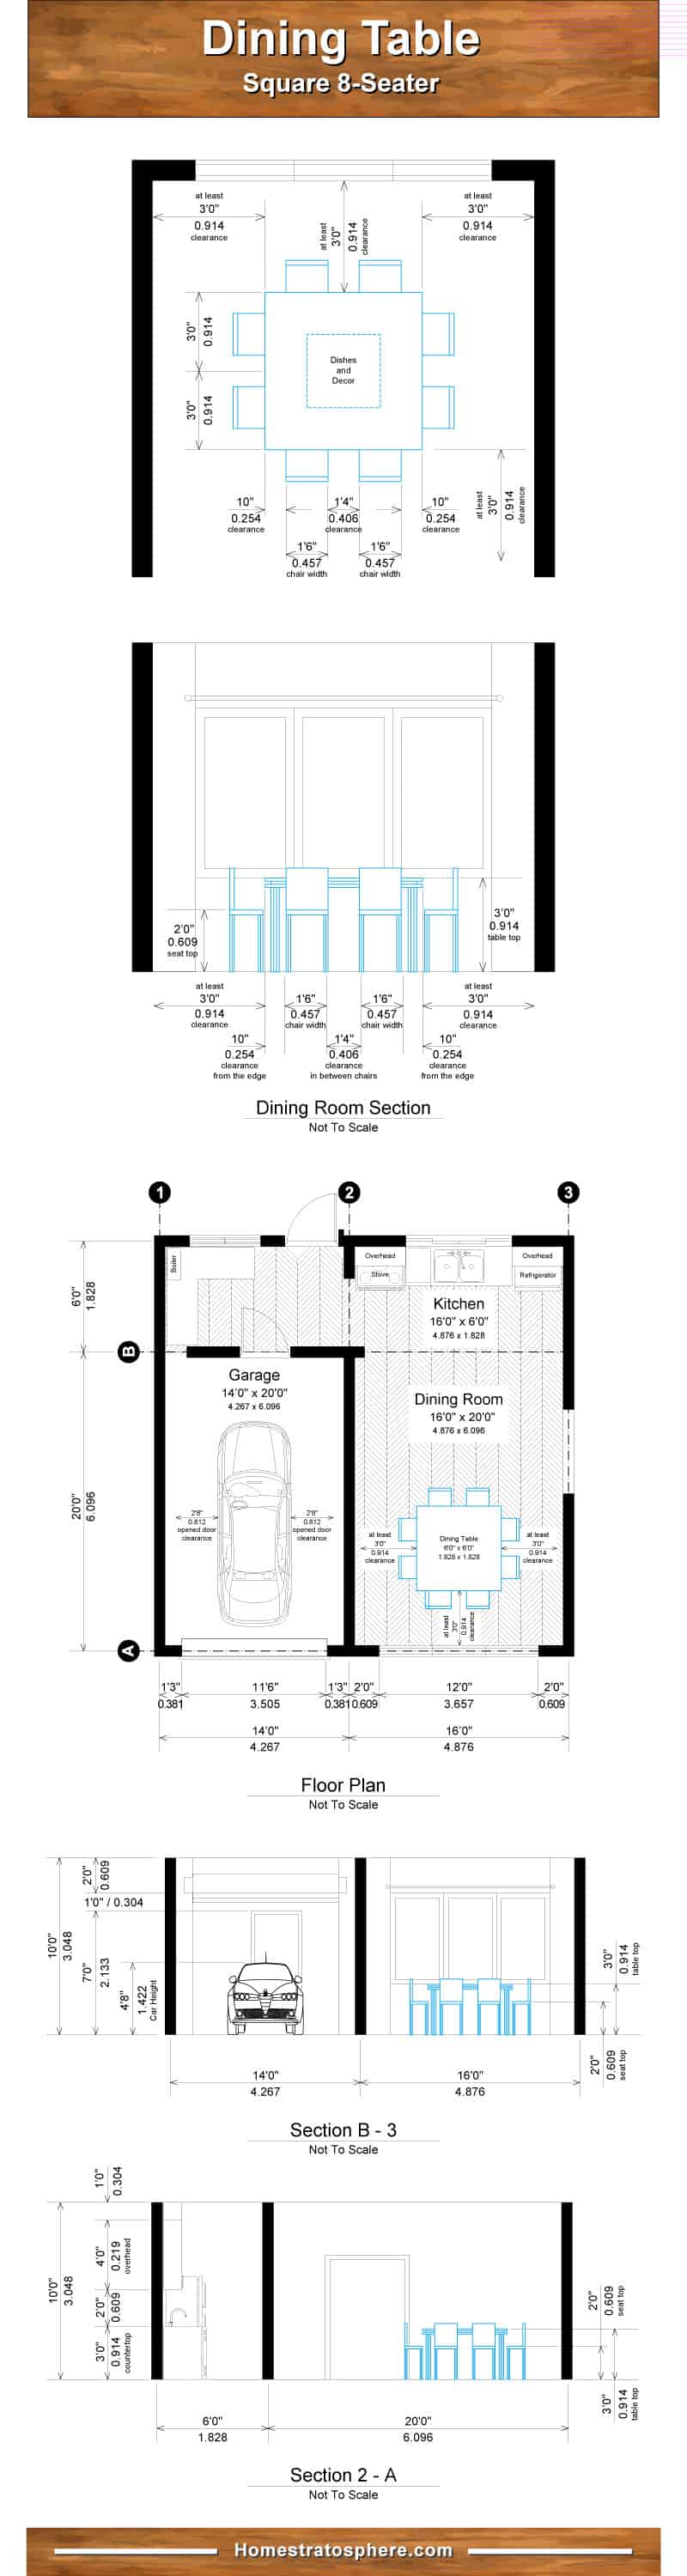 Square dining table dimensions chart for 8 people